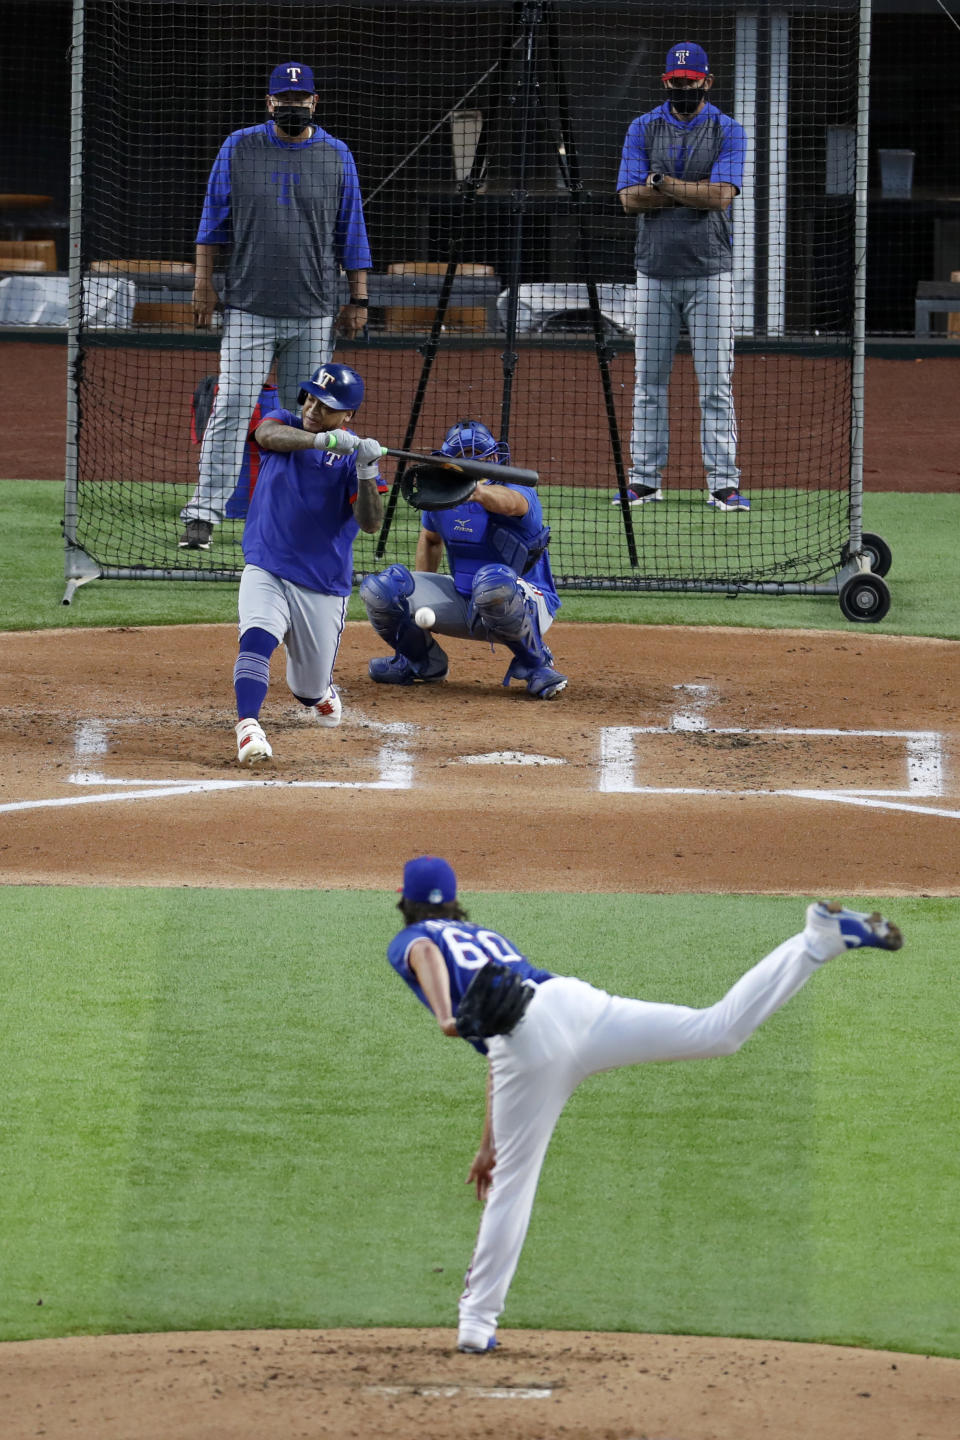 Texas Rangers' Luke Farrell throws to Willie Calhoun as catcher Jeff Mathis, pitching coach Julio Rangel, left rear and manager Chris Woodward, right rear, look on during a baseball practice at Globe Life Field in Arlington, Texas, Friday, July 3, 2020. (AP Photo/Tony Gutierrez)